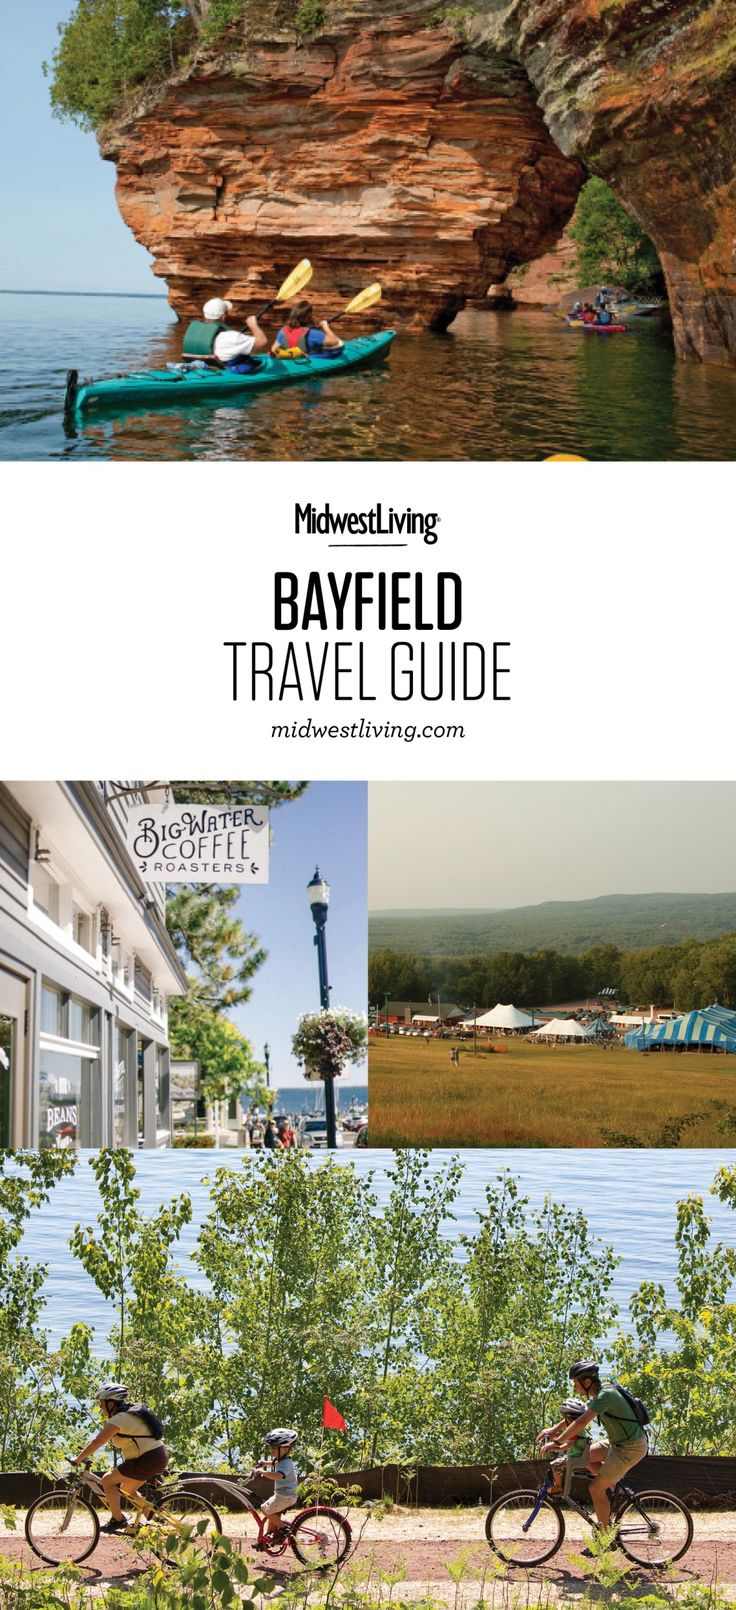 The gateway to the Apostle Islands offers walking and biking tours, sailing outfitters and great ice cream. Check out our trip guide for what to do, where to eat and where to stay on Bayfield.